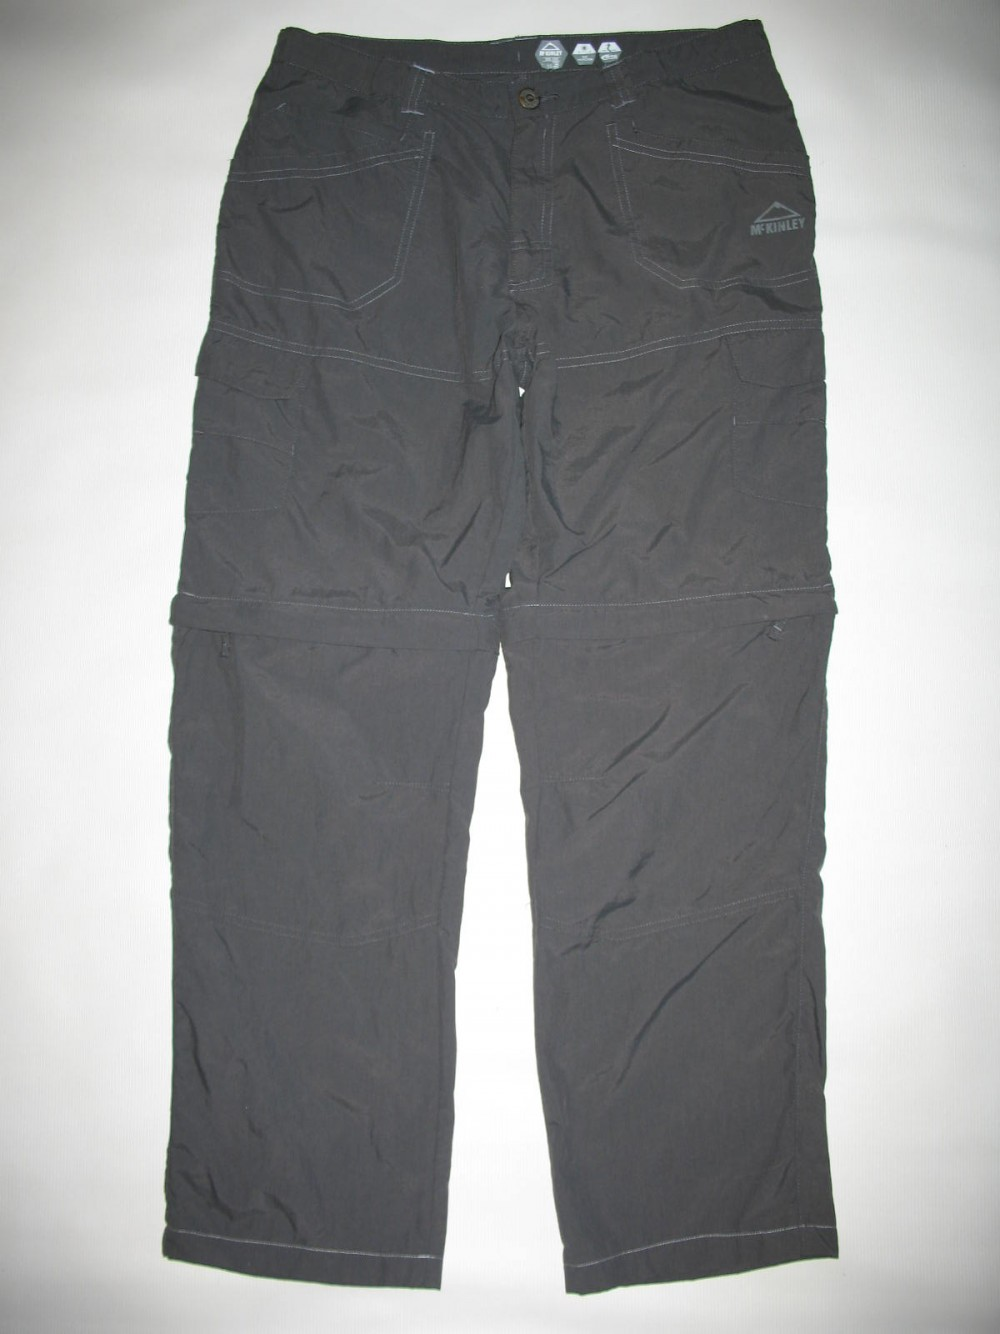 Штаны McKINLEY 2in1 pants lady (размер М) - 1